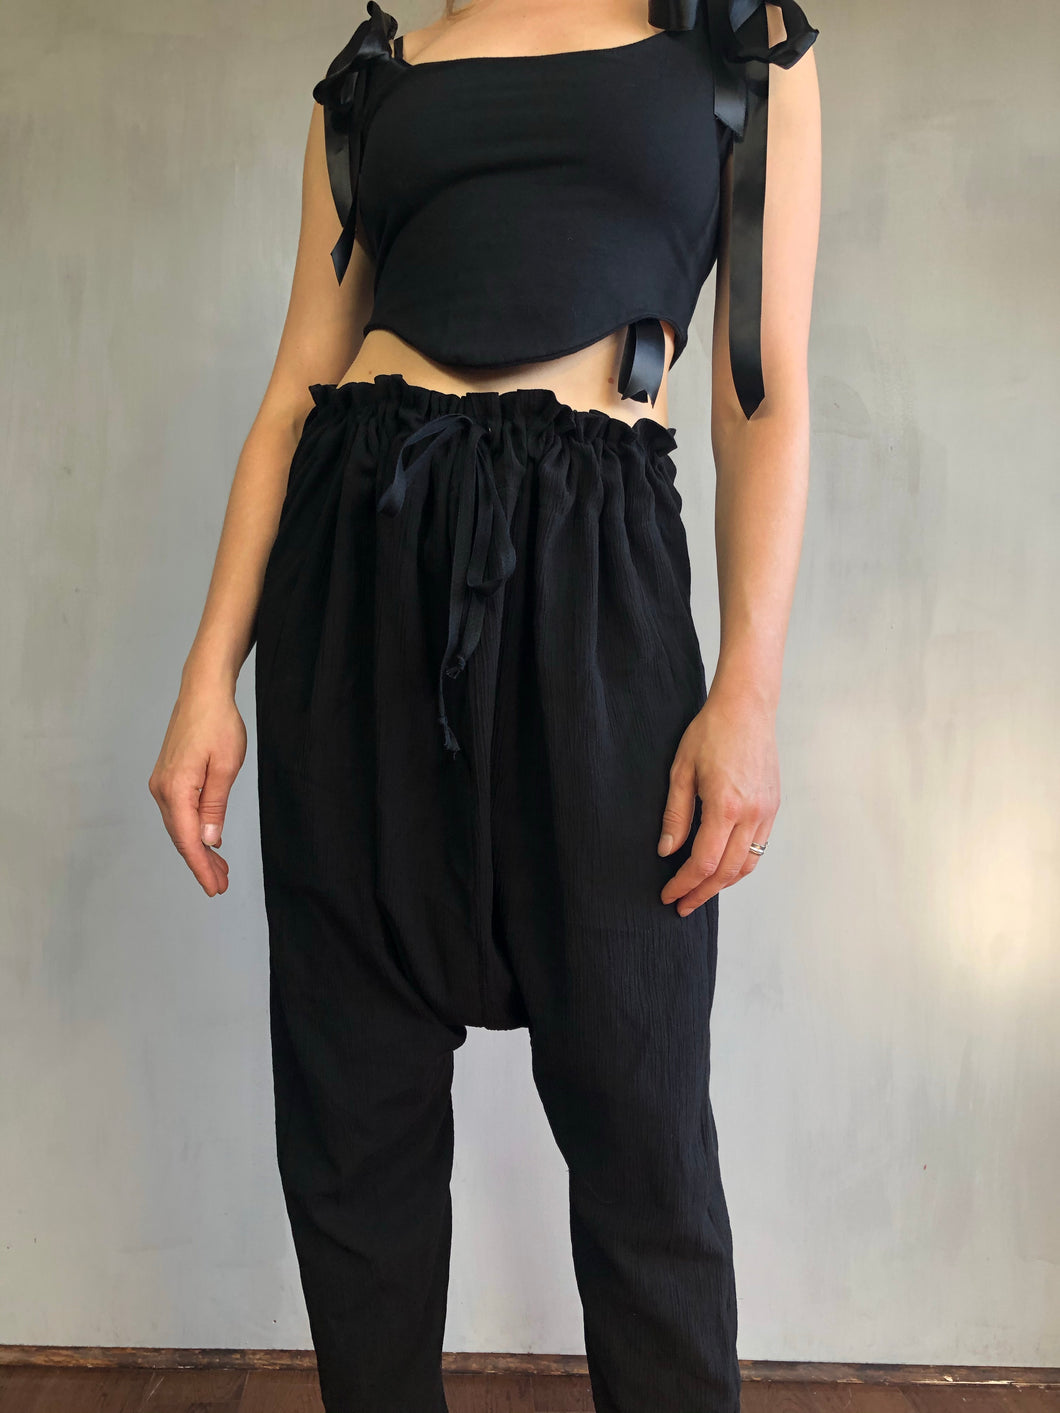 Sample Sale: Drawstring Cotton Trousers (One Size)